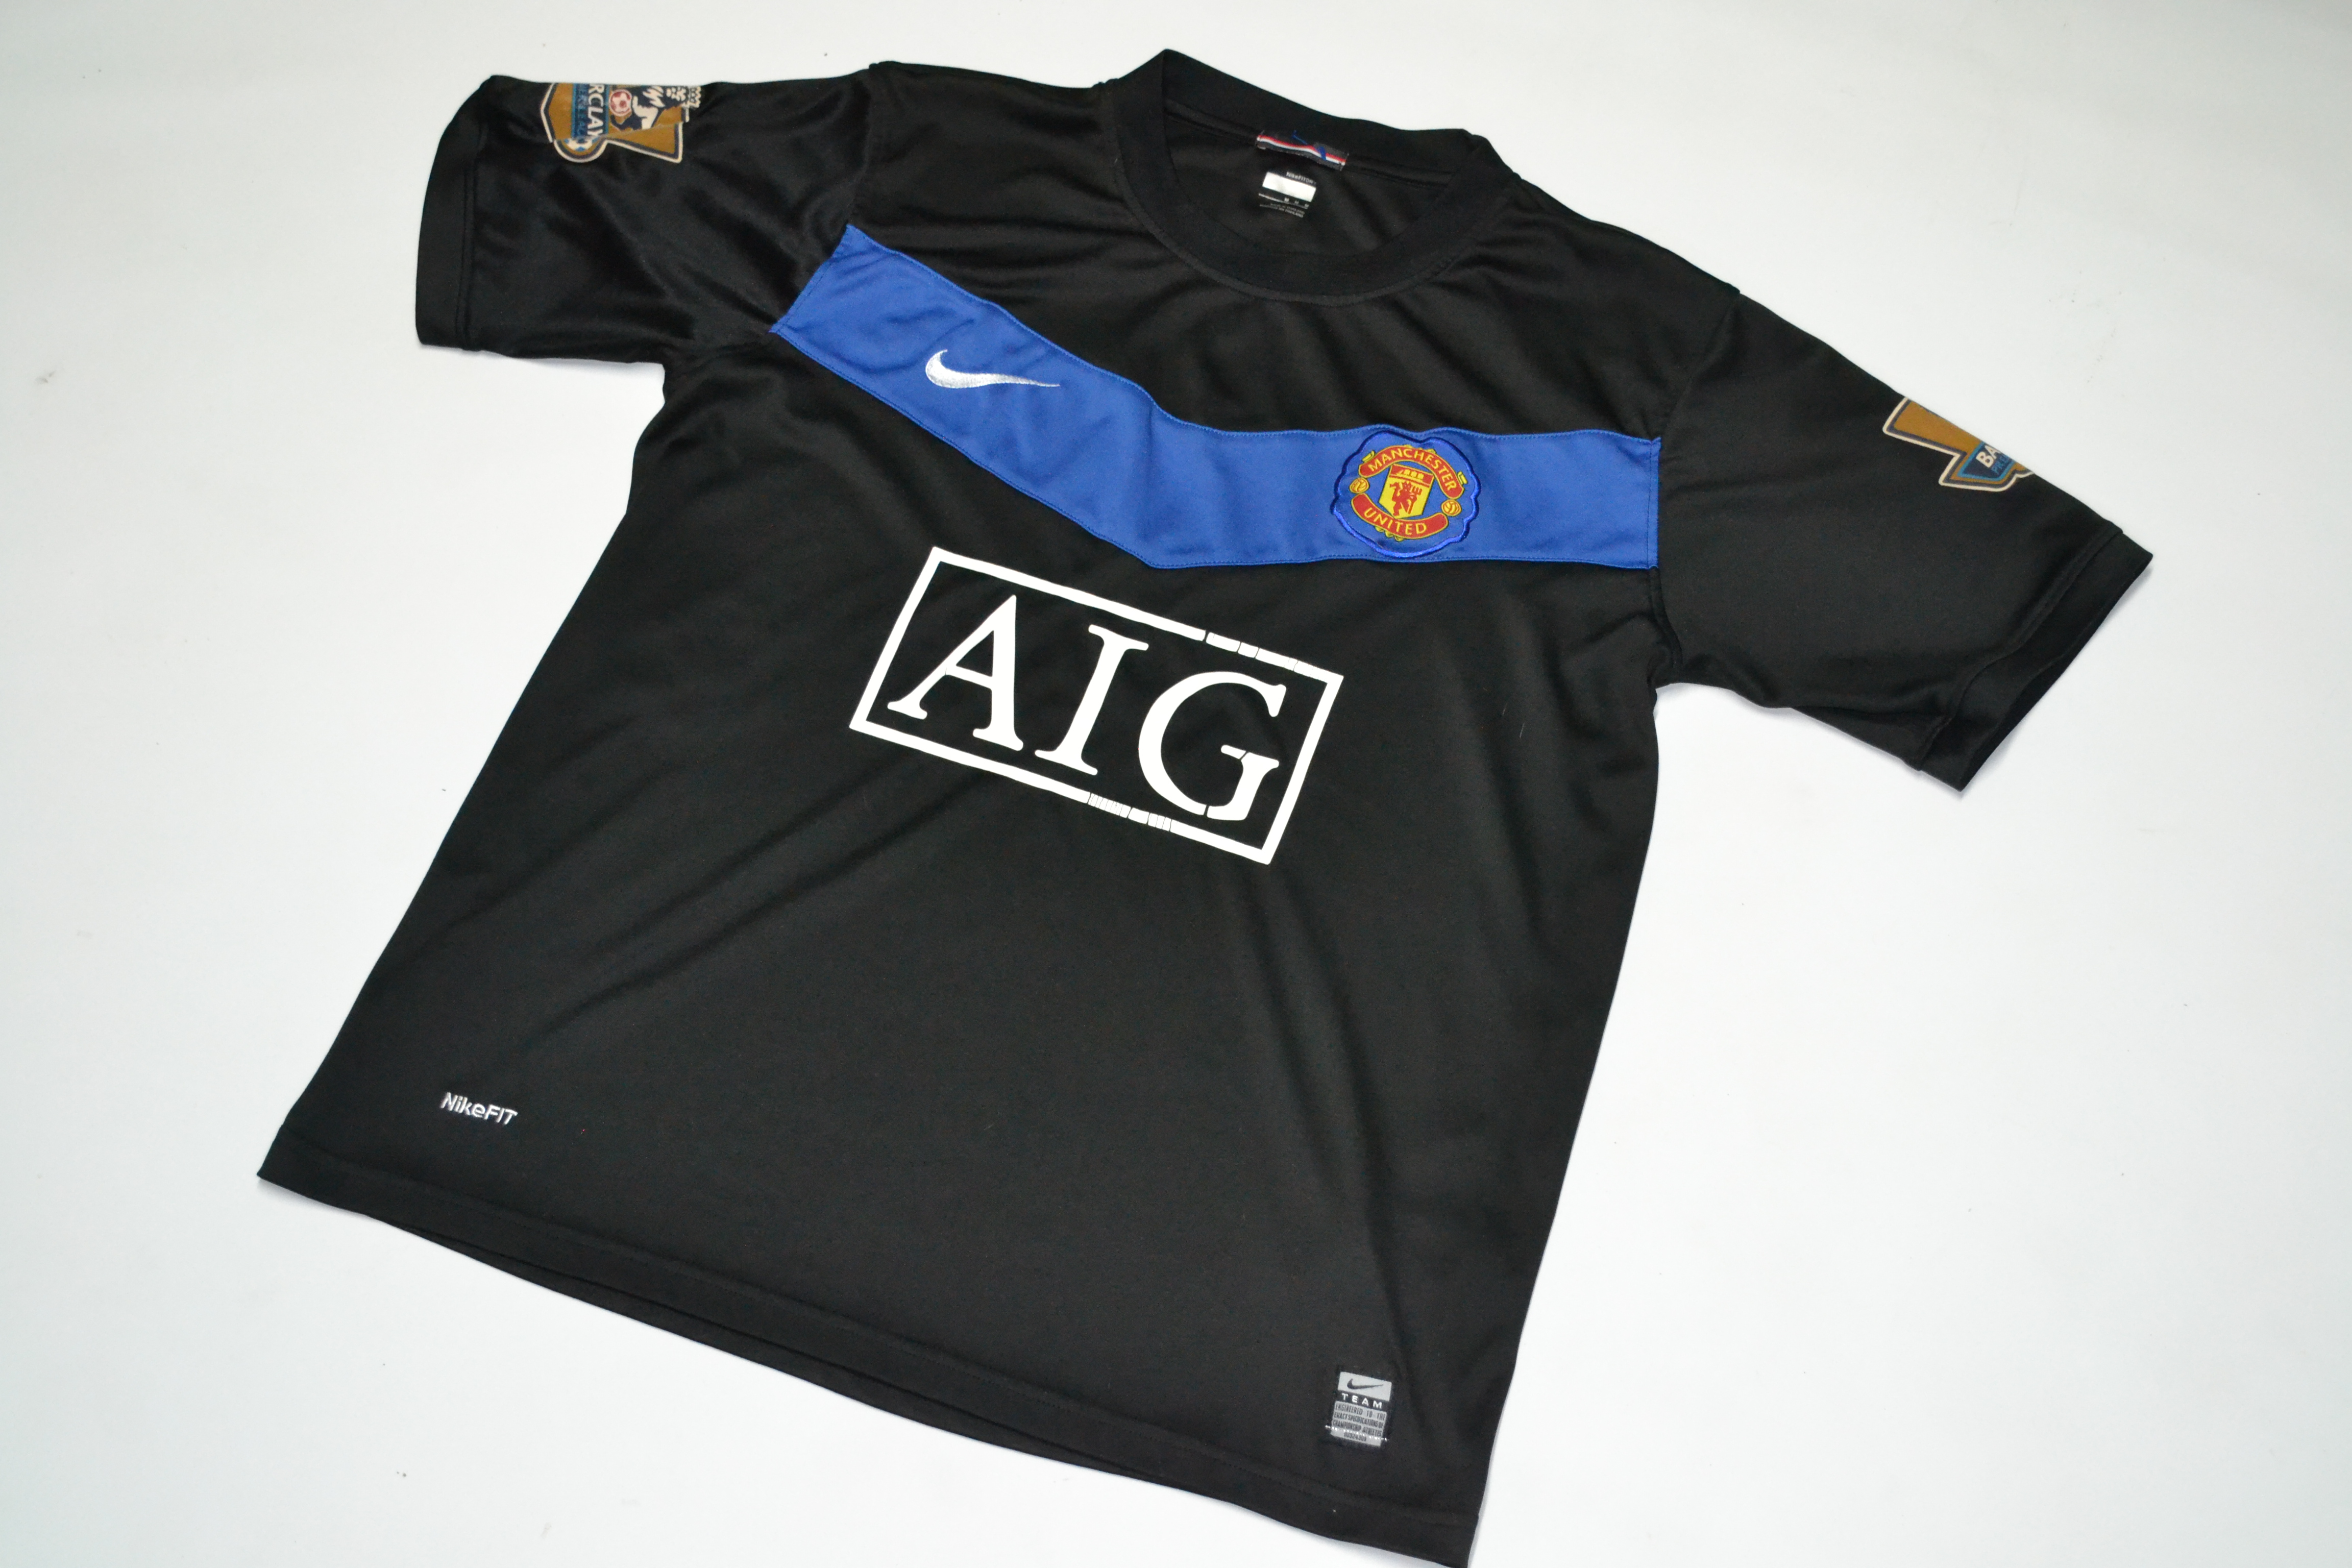 51e236a10 Nike Manchester United Soccer Futbol Jersey Nike Dry Fit Aig | Grailed